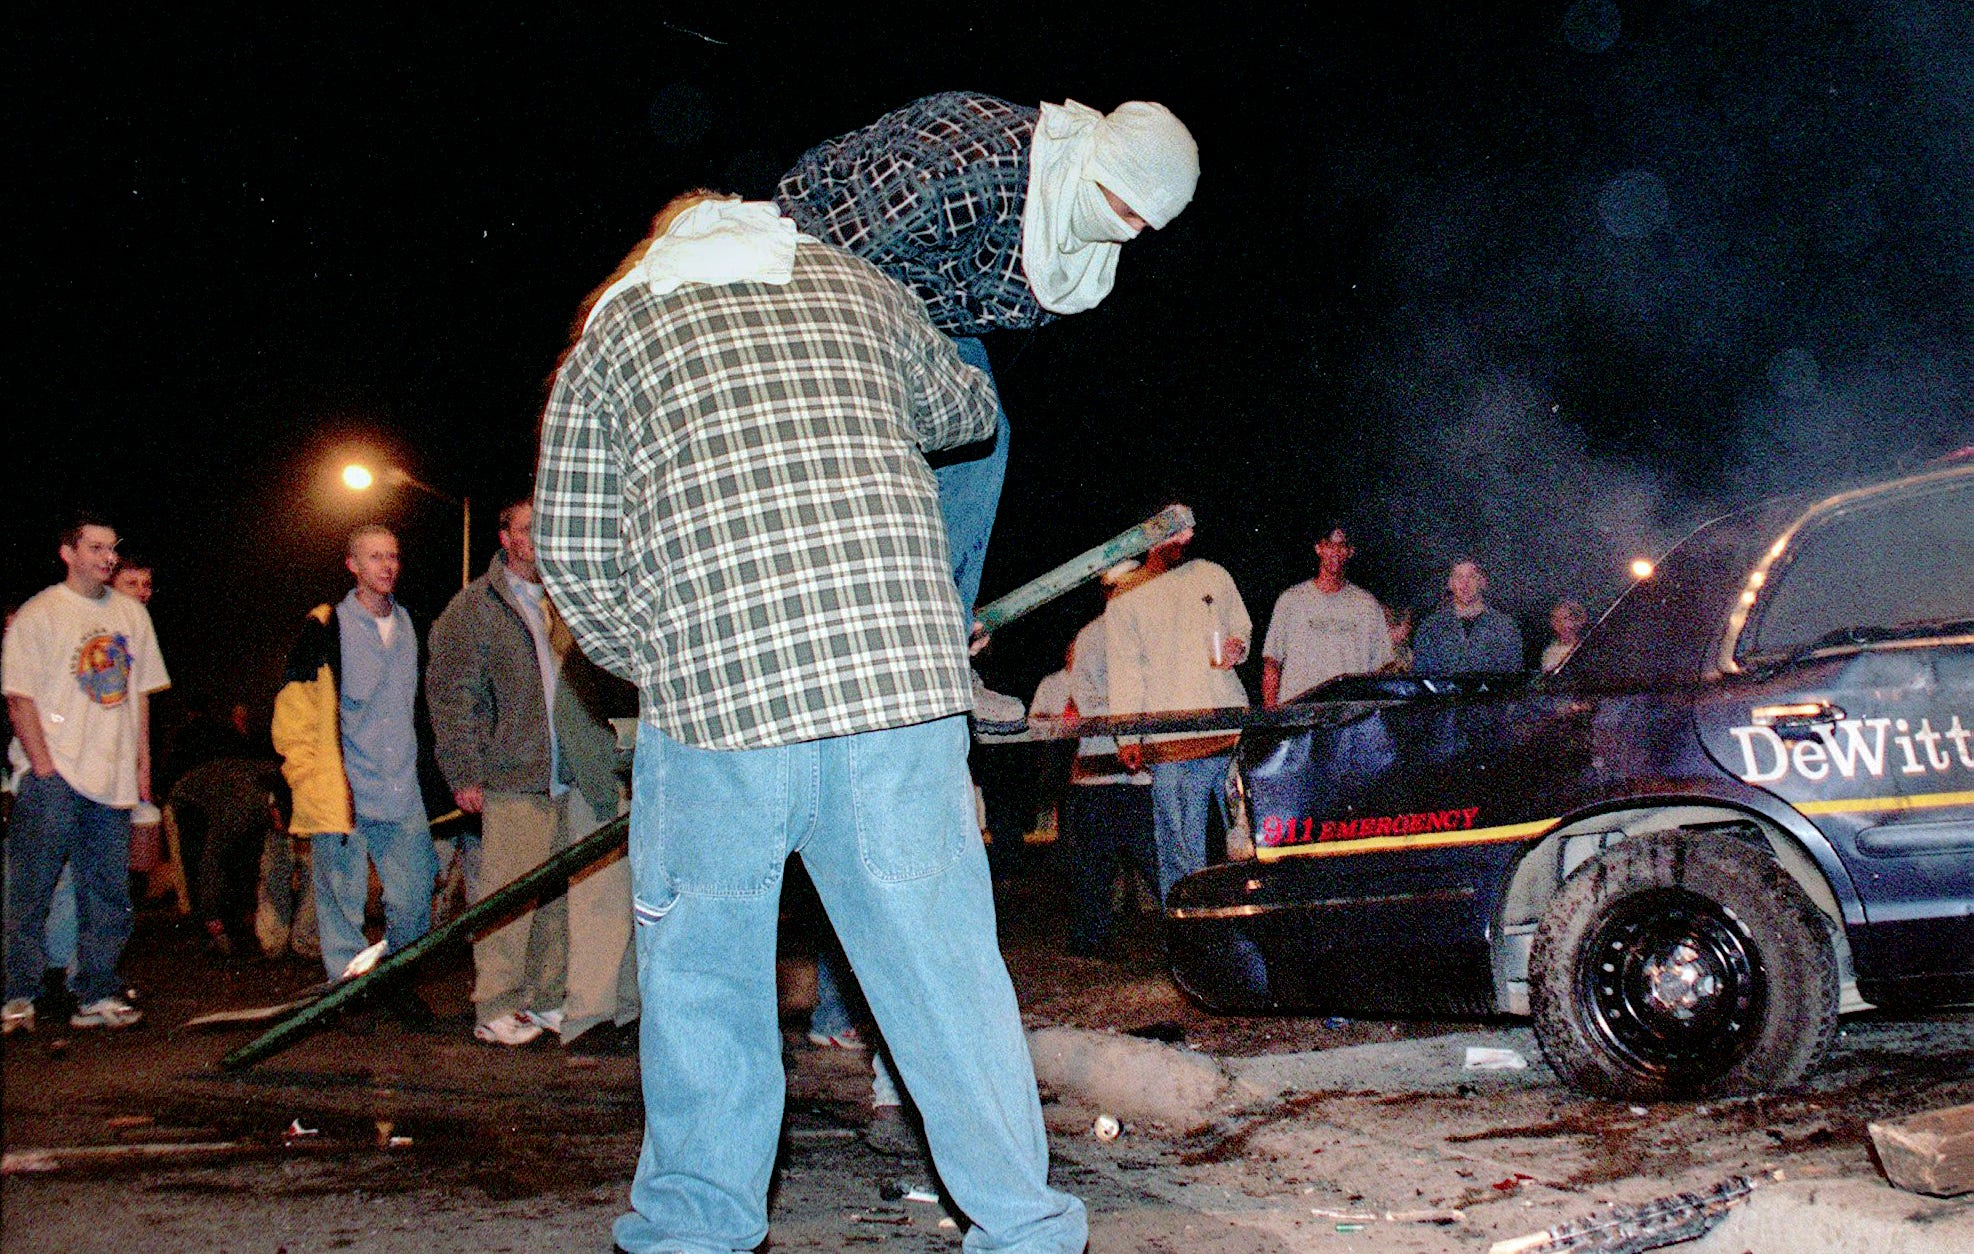 Men try to open a box of a damanged DeWitt Township Police automobile on Saturday, Mar 27, 1999, in East Lansing.